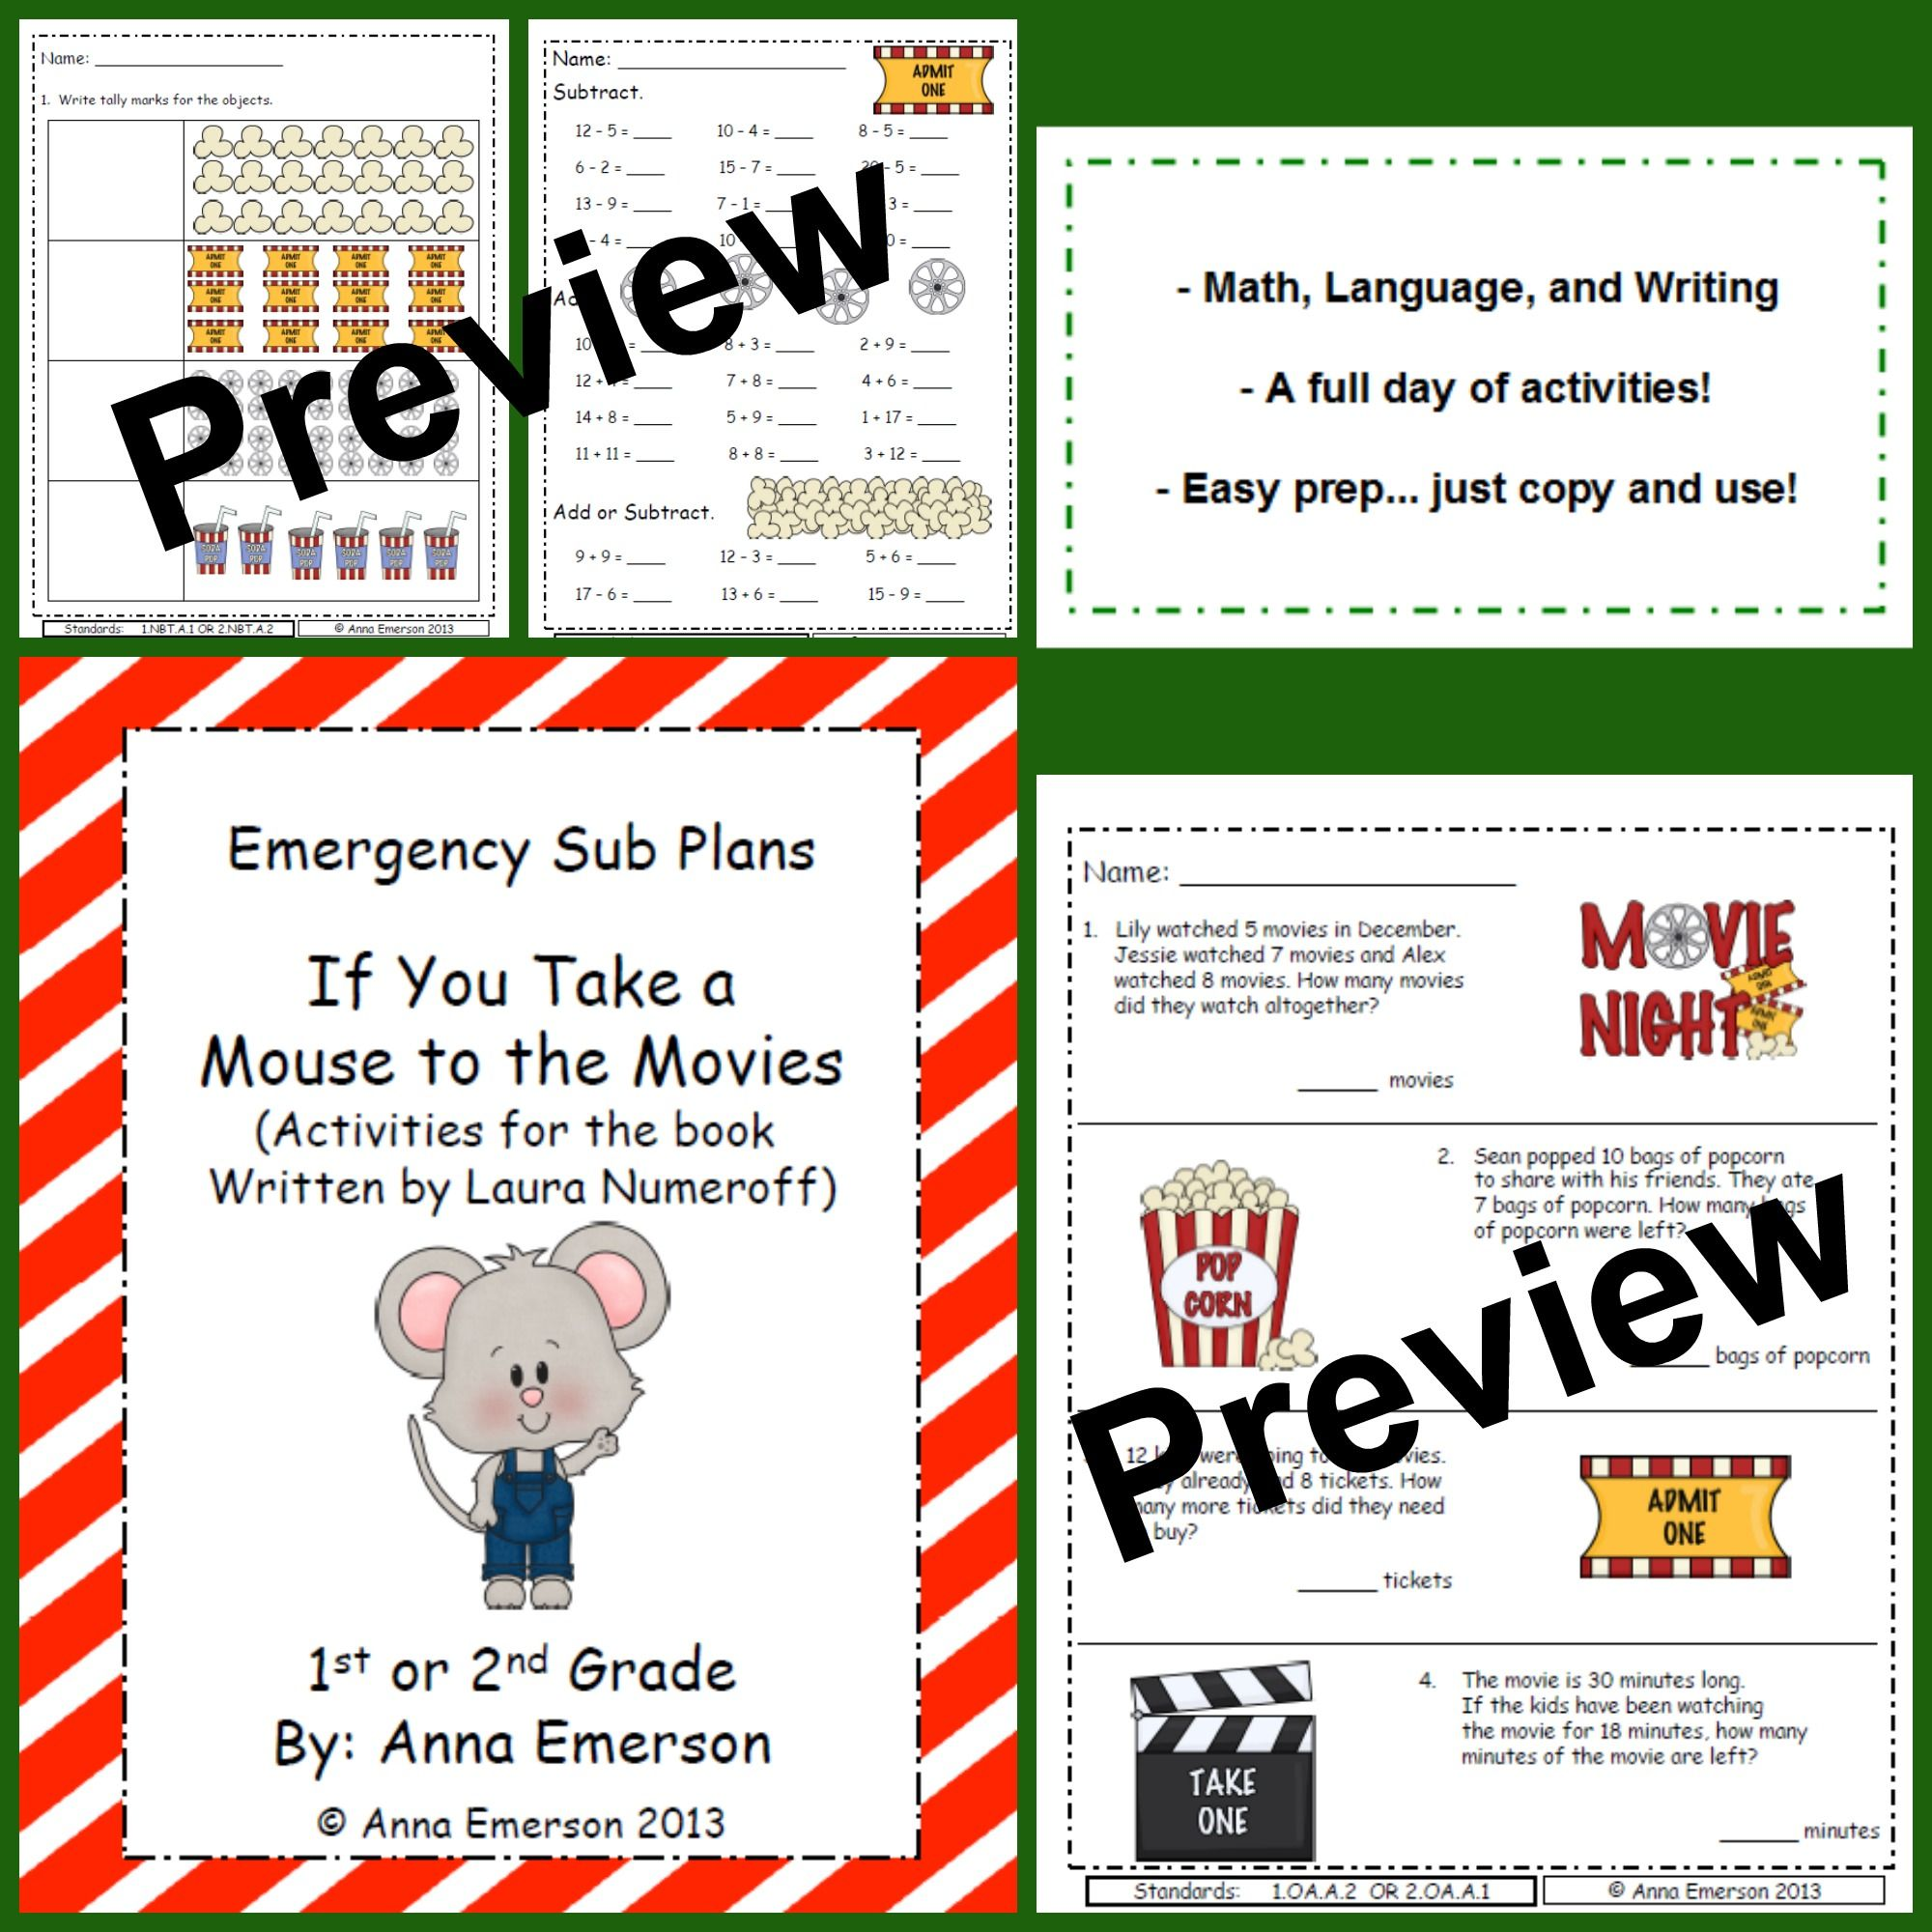 Worksheets If You Take A Mouse To School Worksheets emergency sub plans if you take a mouse to the movies for first or by laura numeroff